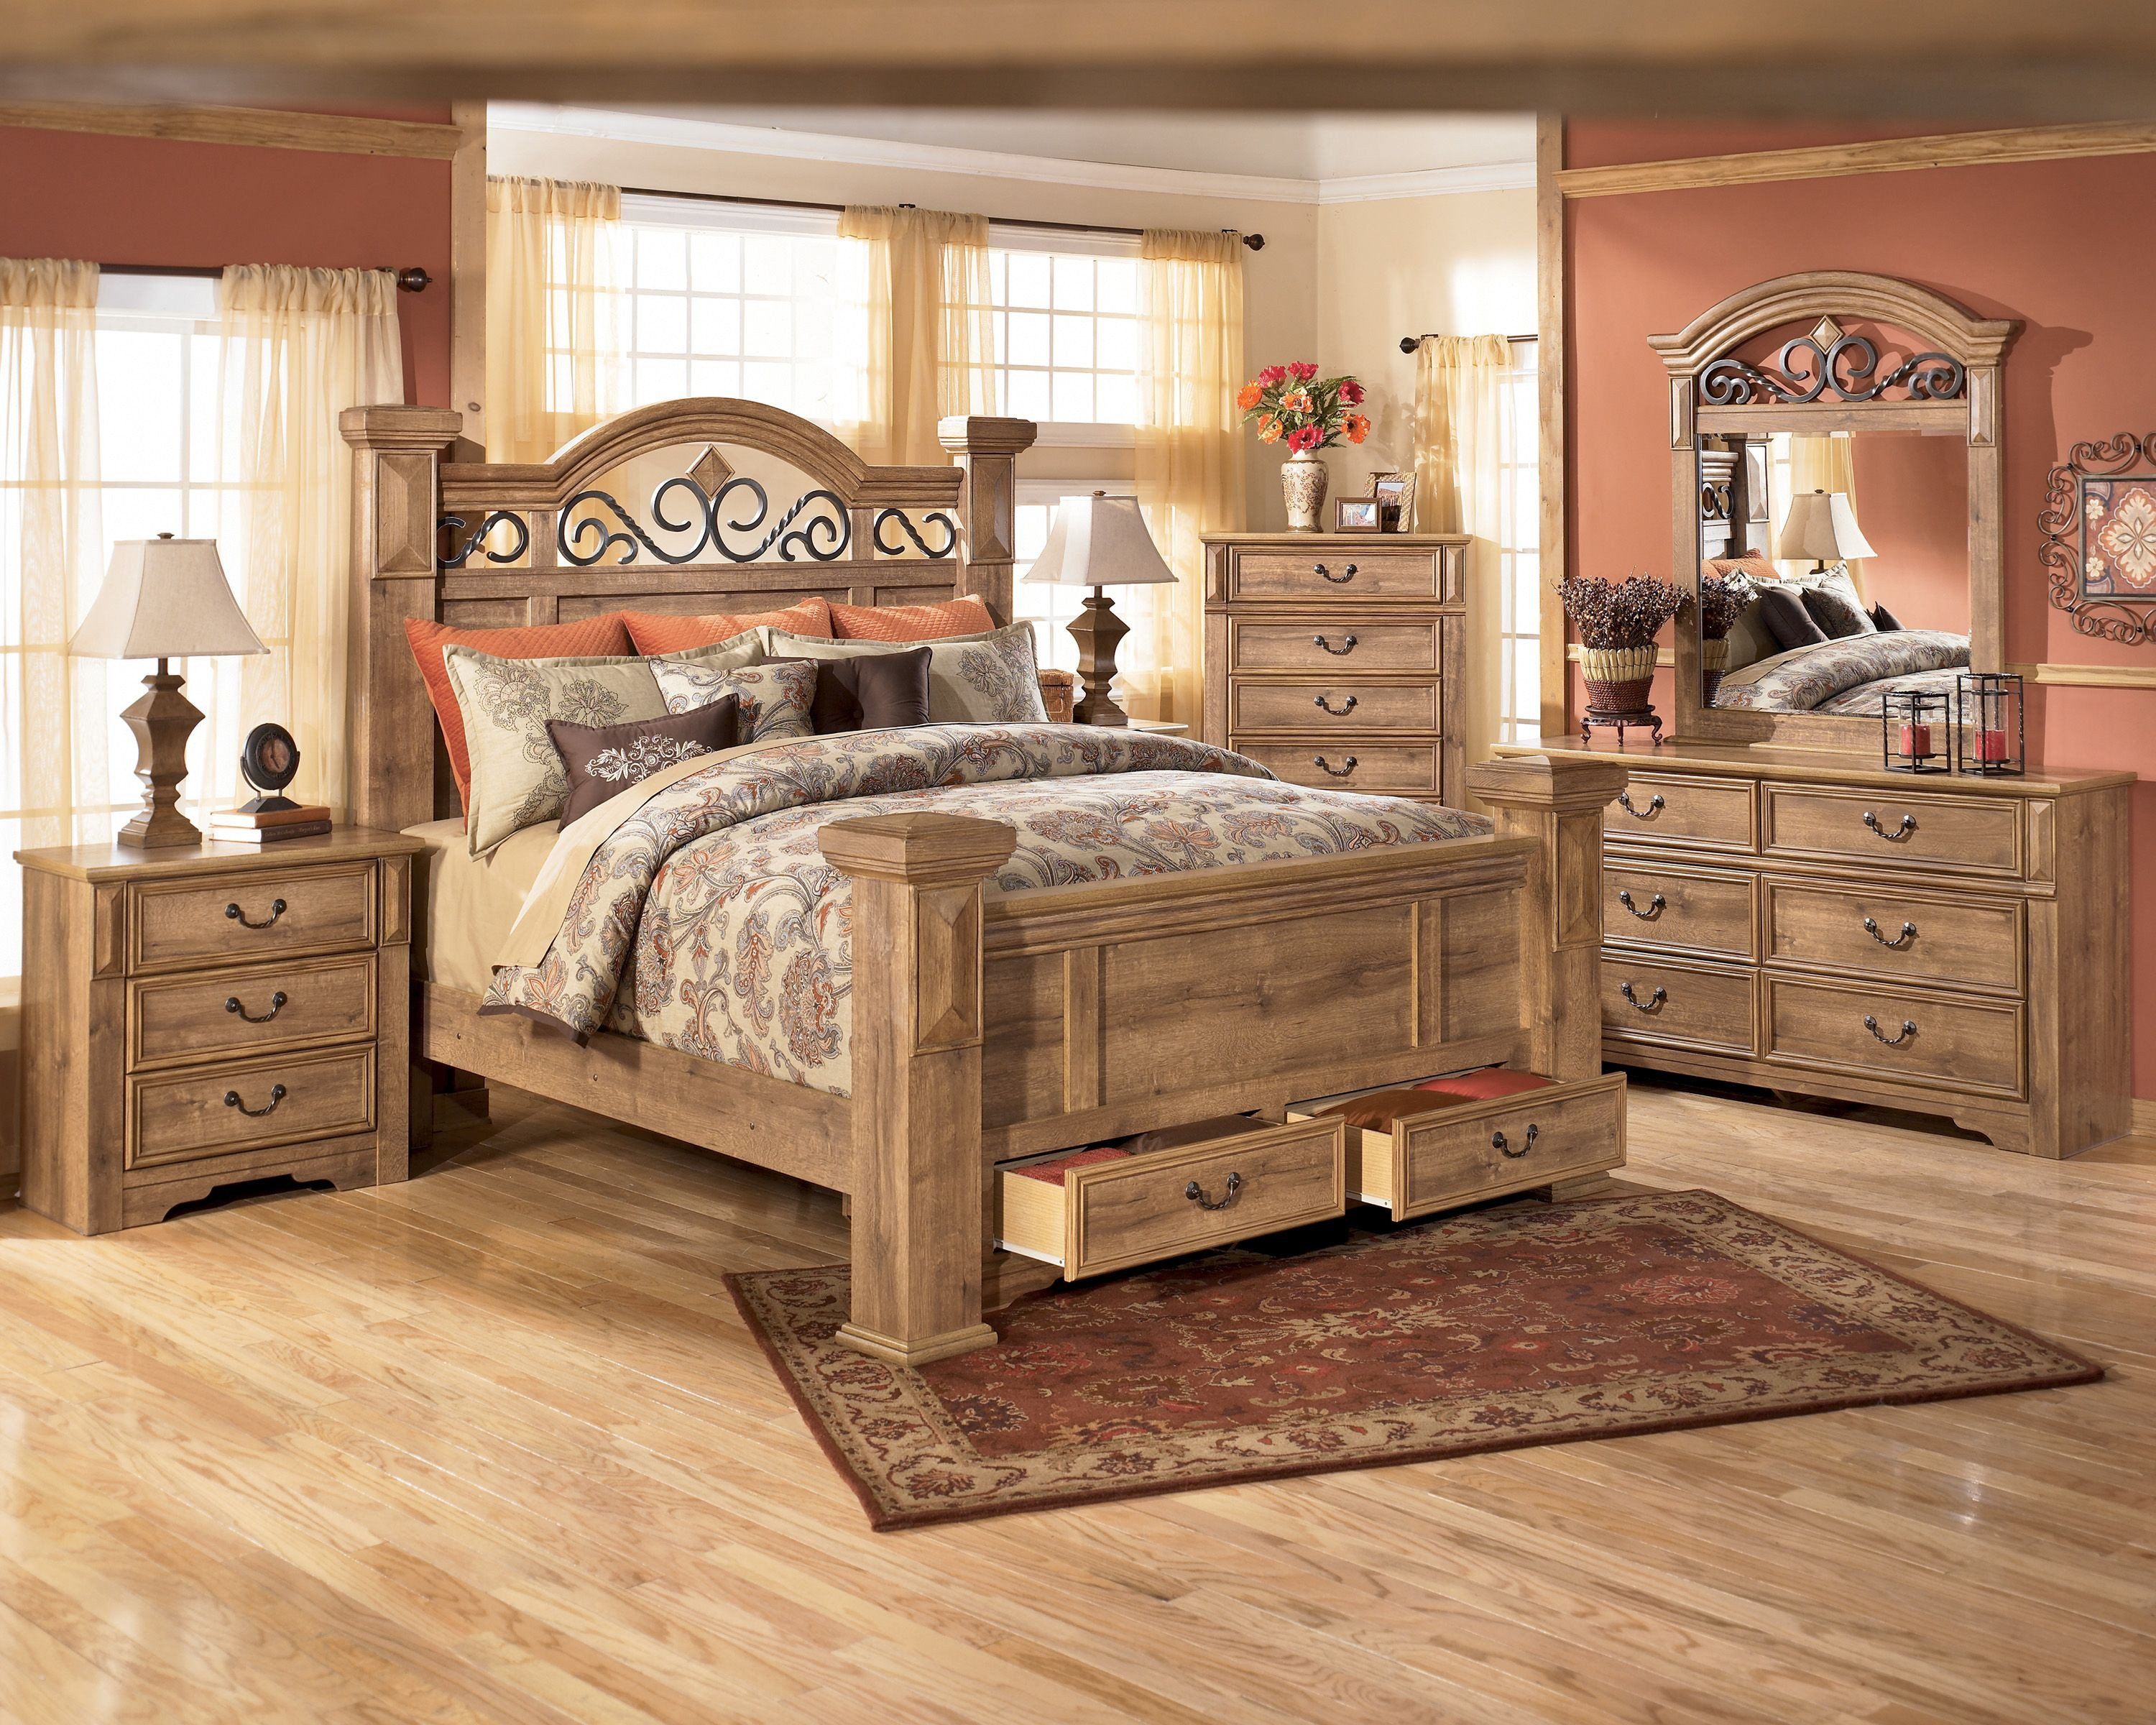 Ashley Furniture Canopy Bedroom Set Fresh Awesome Awesome Full Size Bed Set 89 Home Decorating